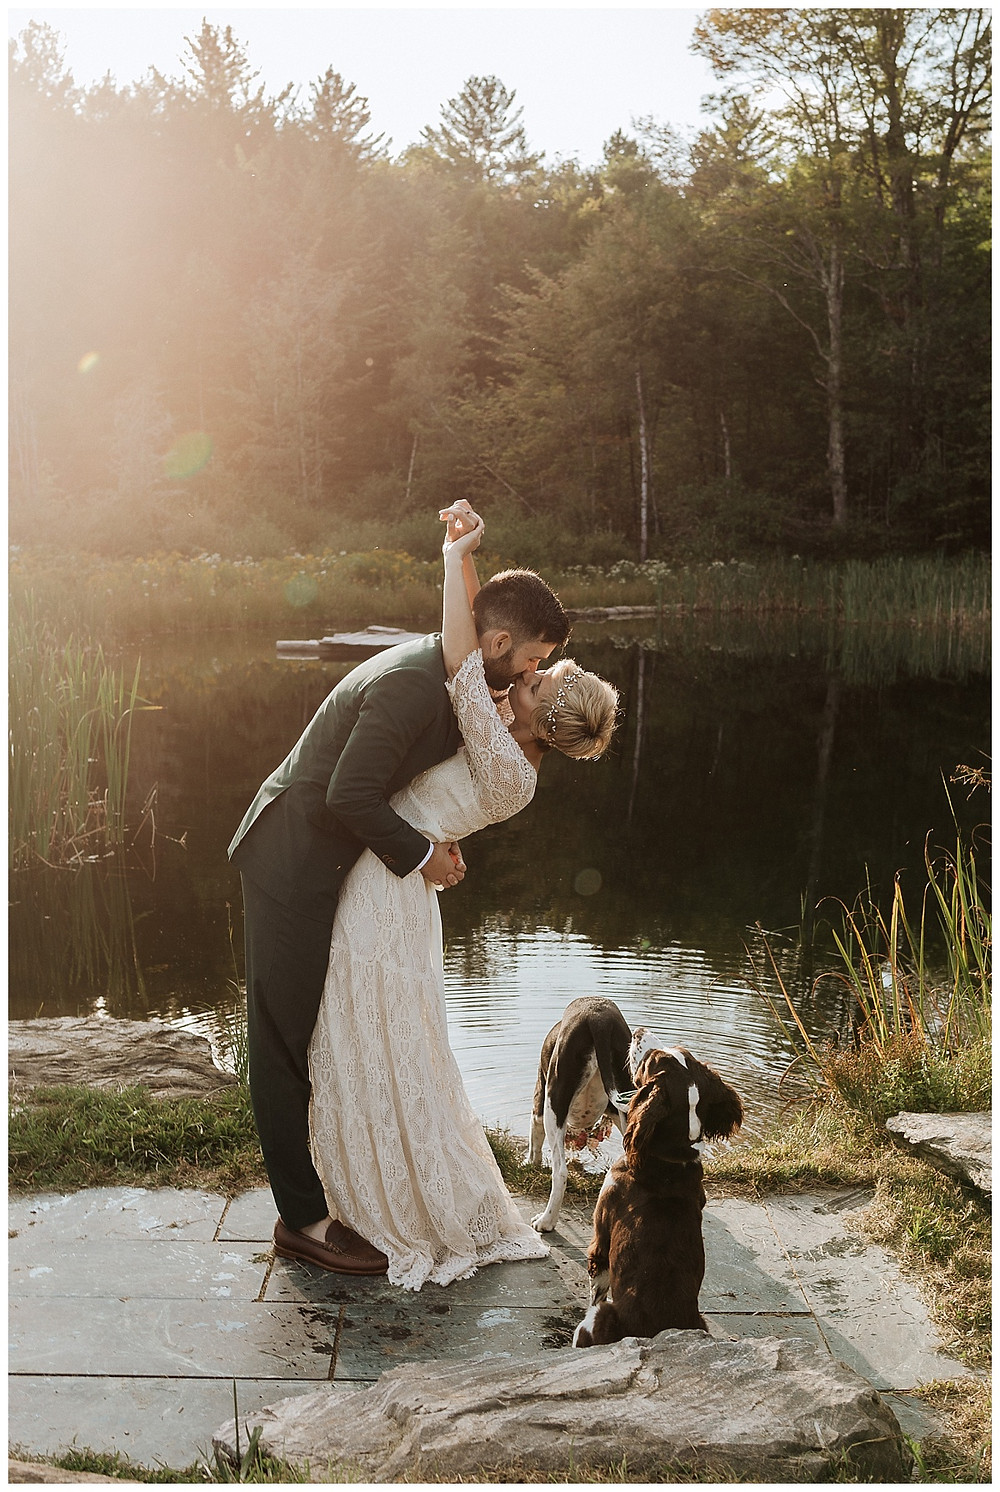 Bride & Groom Sunset Portraits with Pups